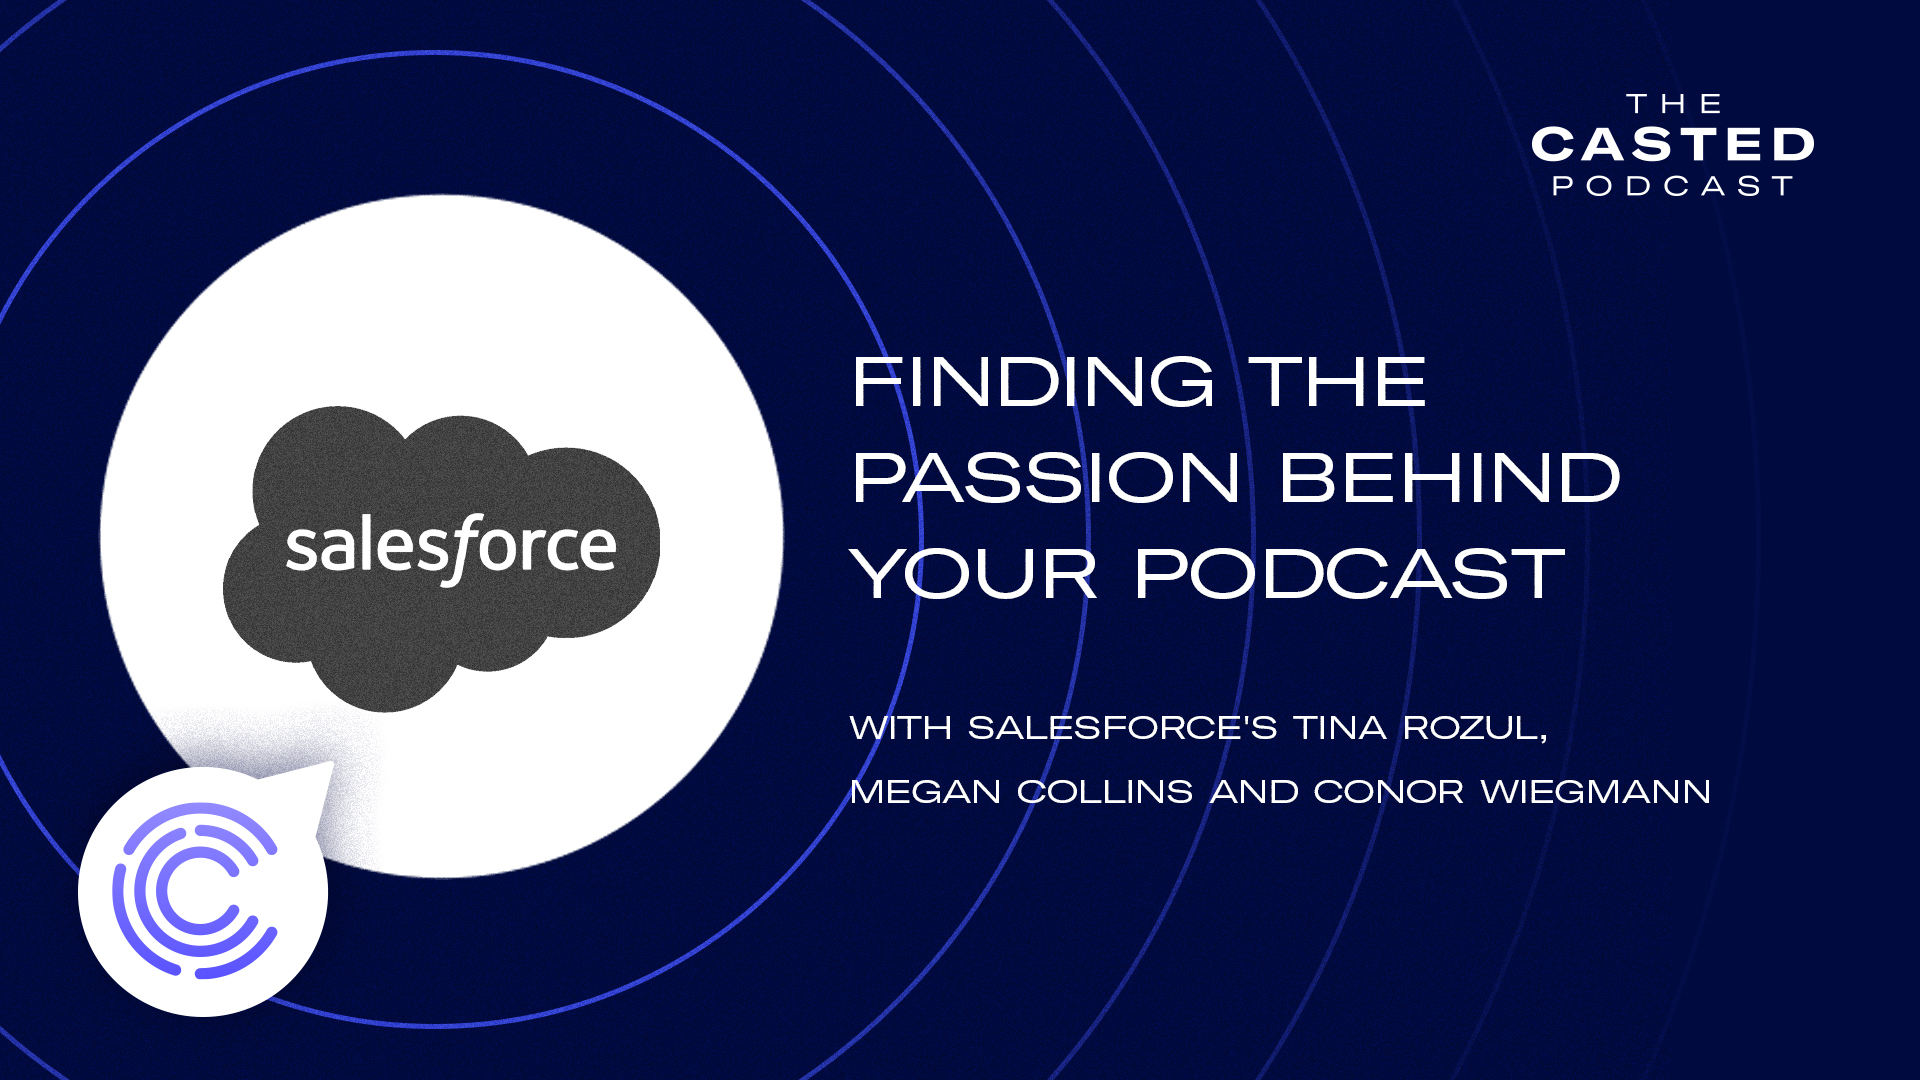 Finding the Passion Behind Your Podcast with Salesforce's Tina Rozul, Megan Collins, and Conor Wiegmann